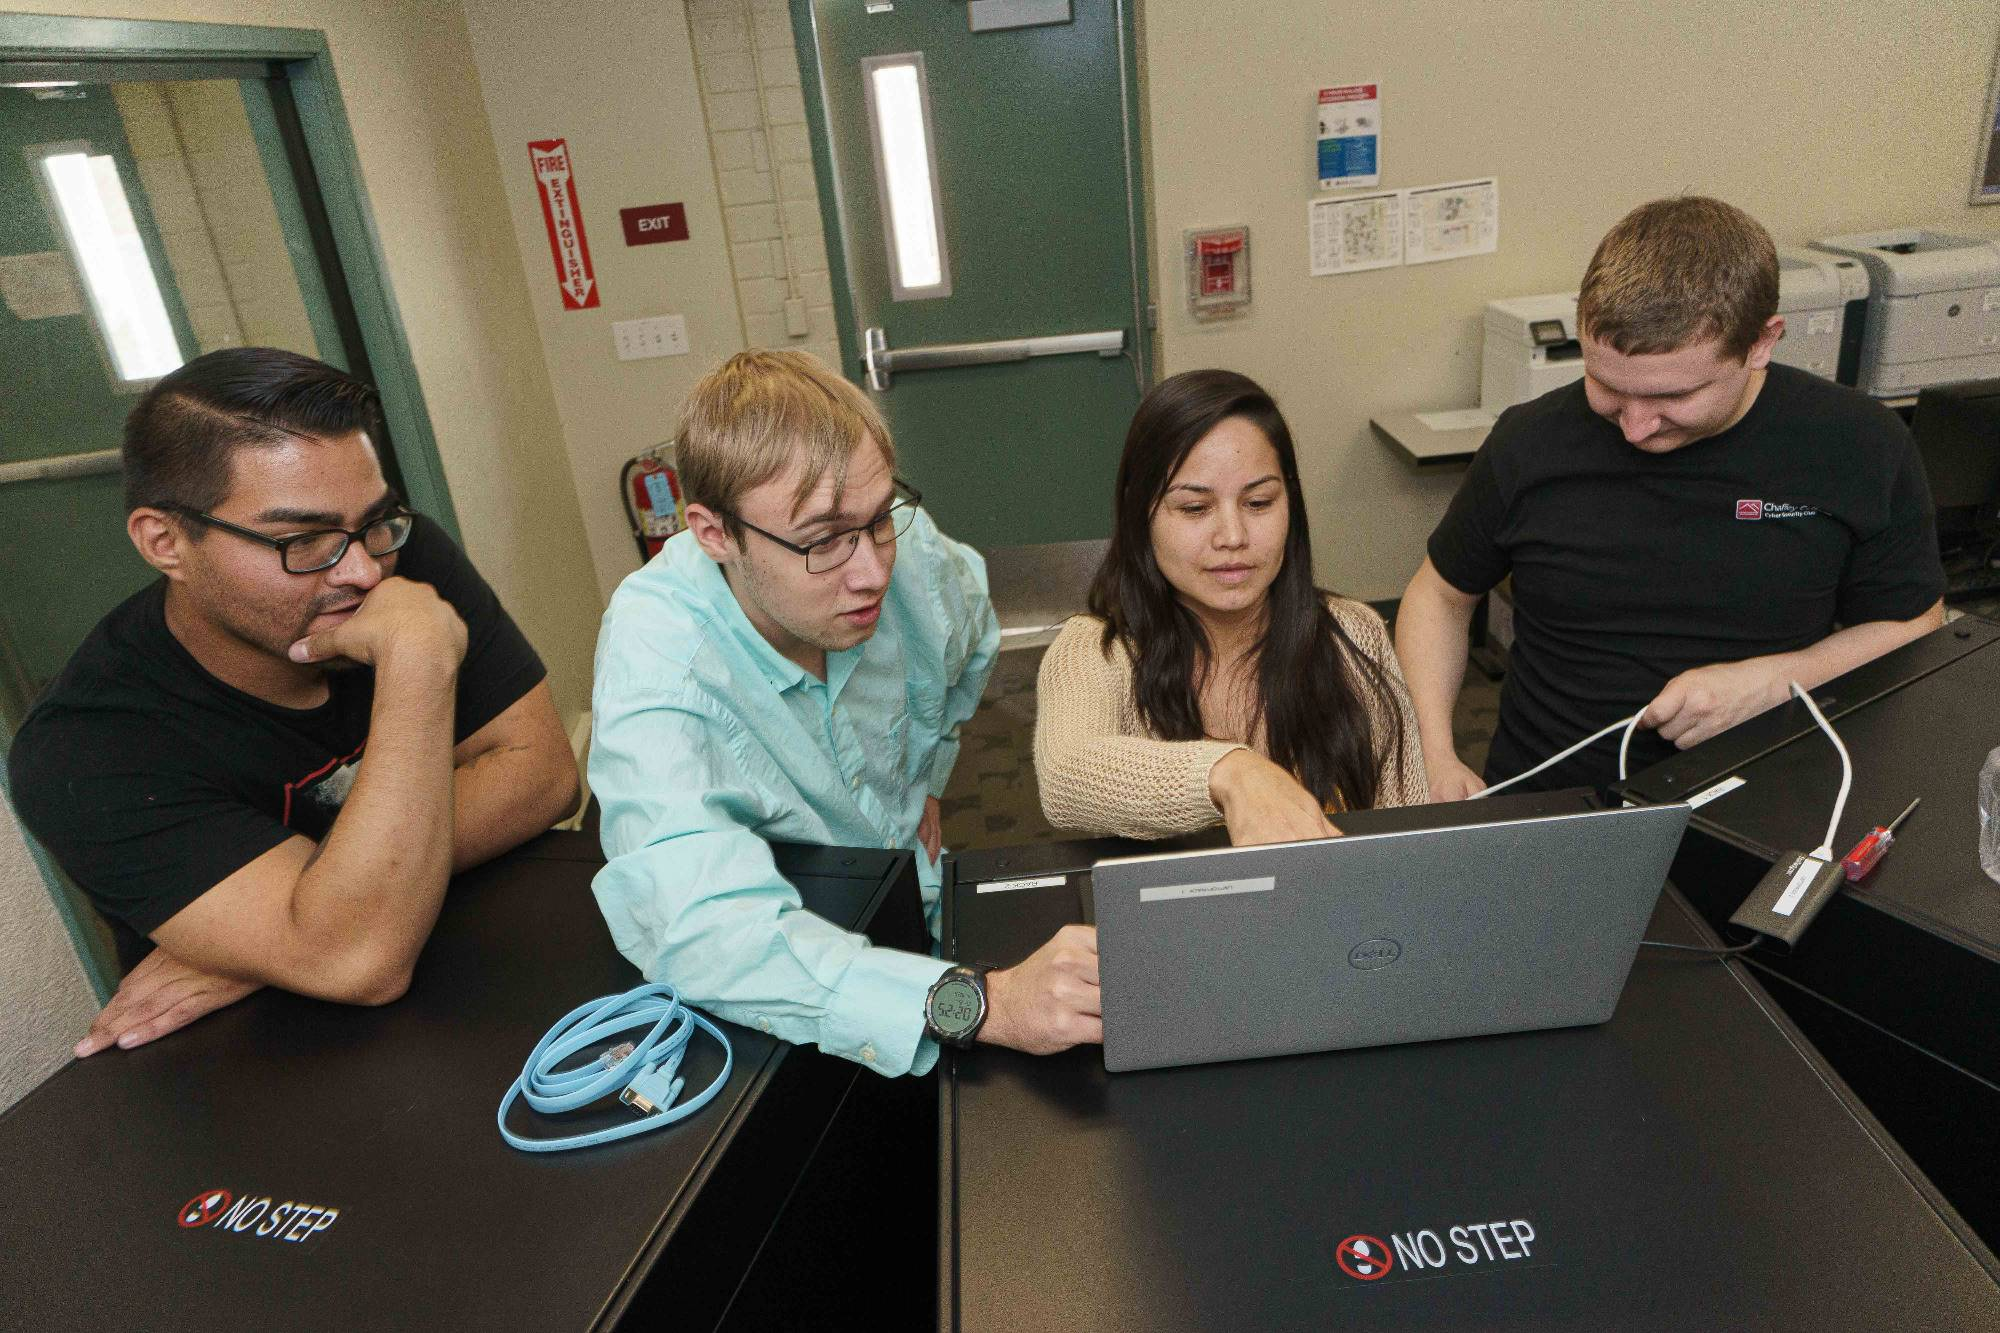 Cybersecurity students examine a laptop during a class.